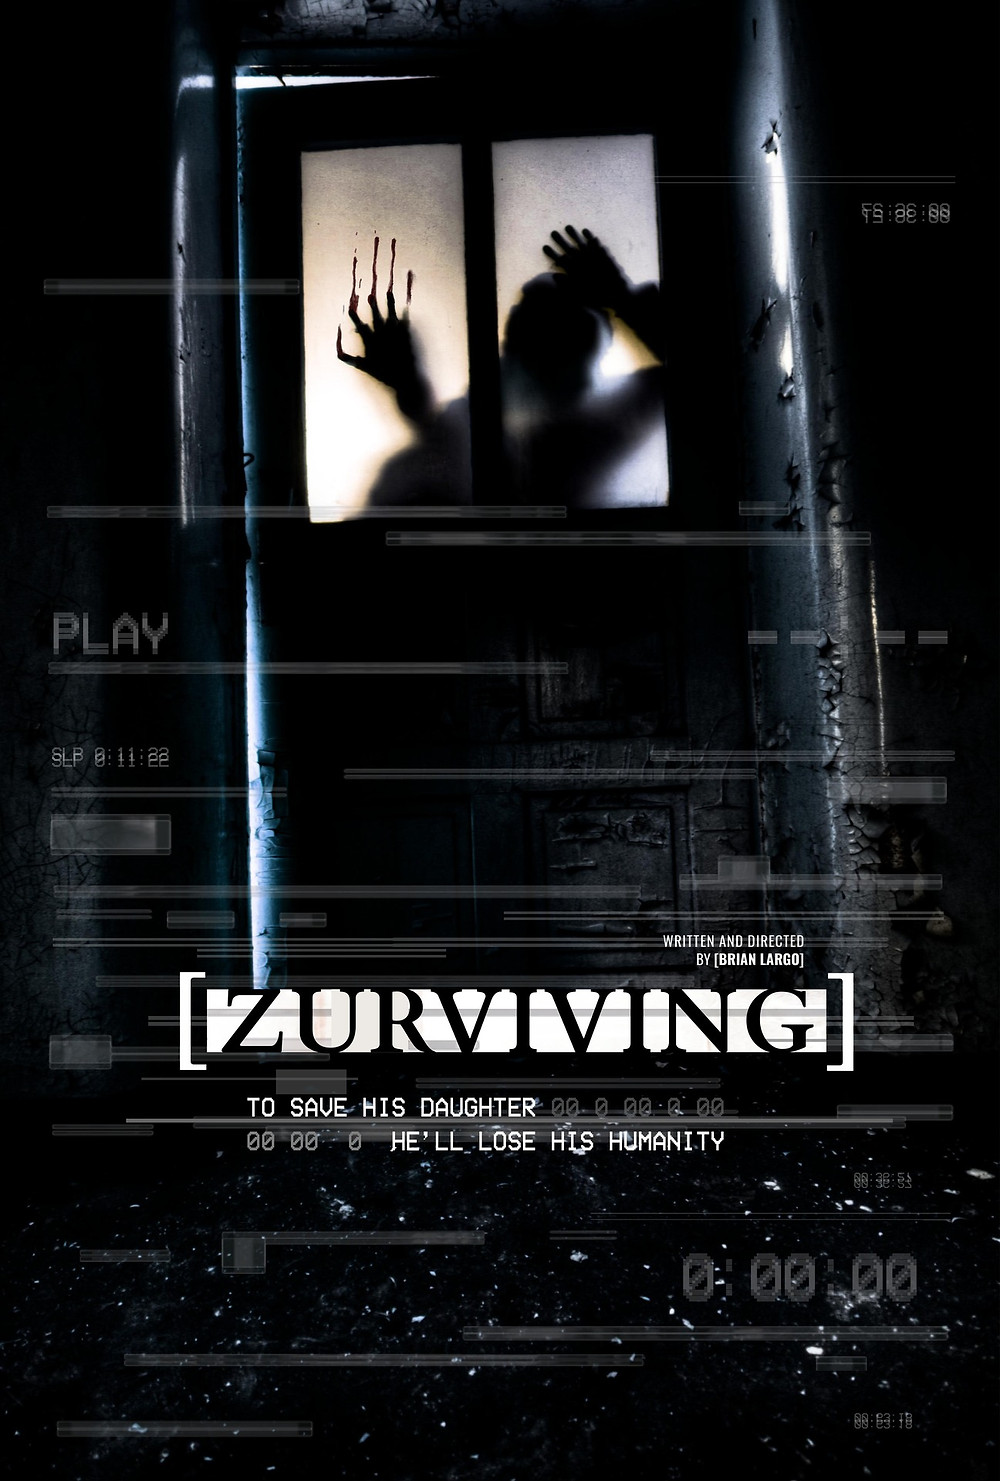 Poster for Zurviving showing character.